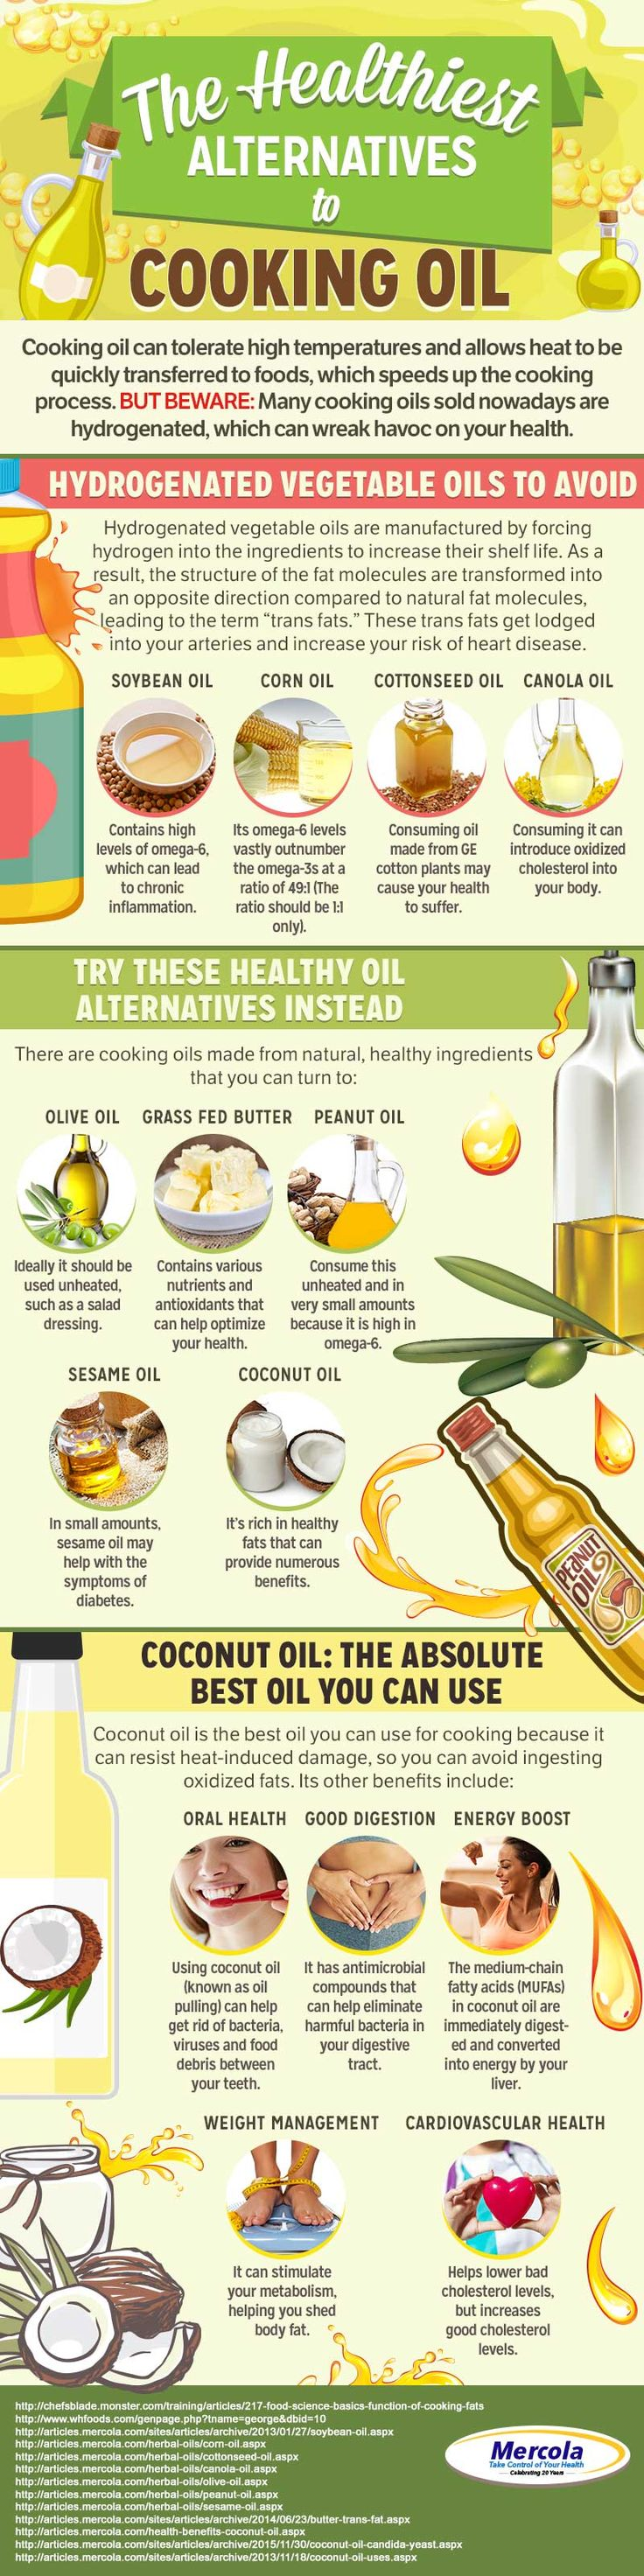 Find out which cooking oils are good for your health and which ones to avoid. http://www.mercola.com/infographics/healthiest-cooking-oil.htm